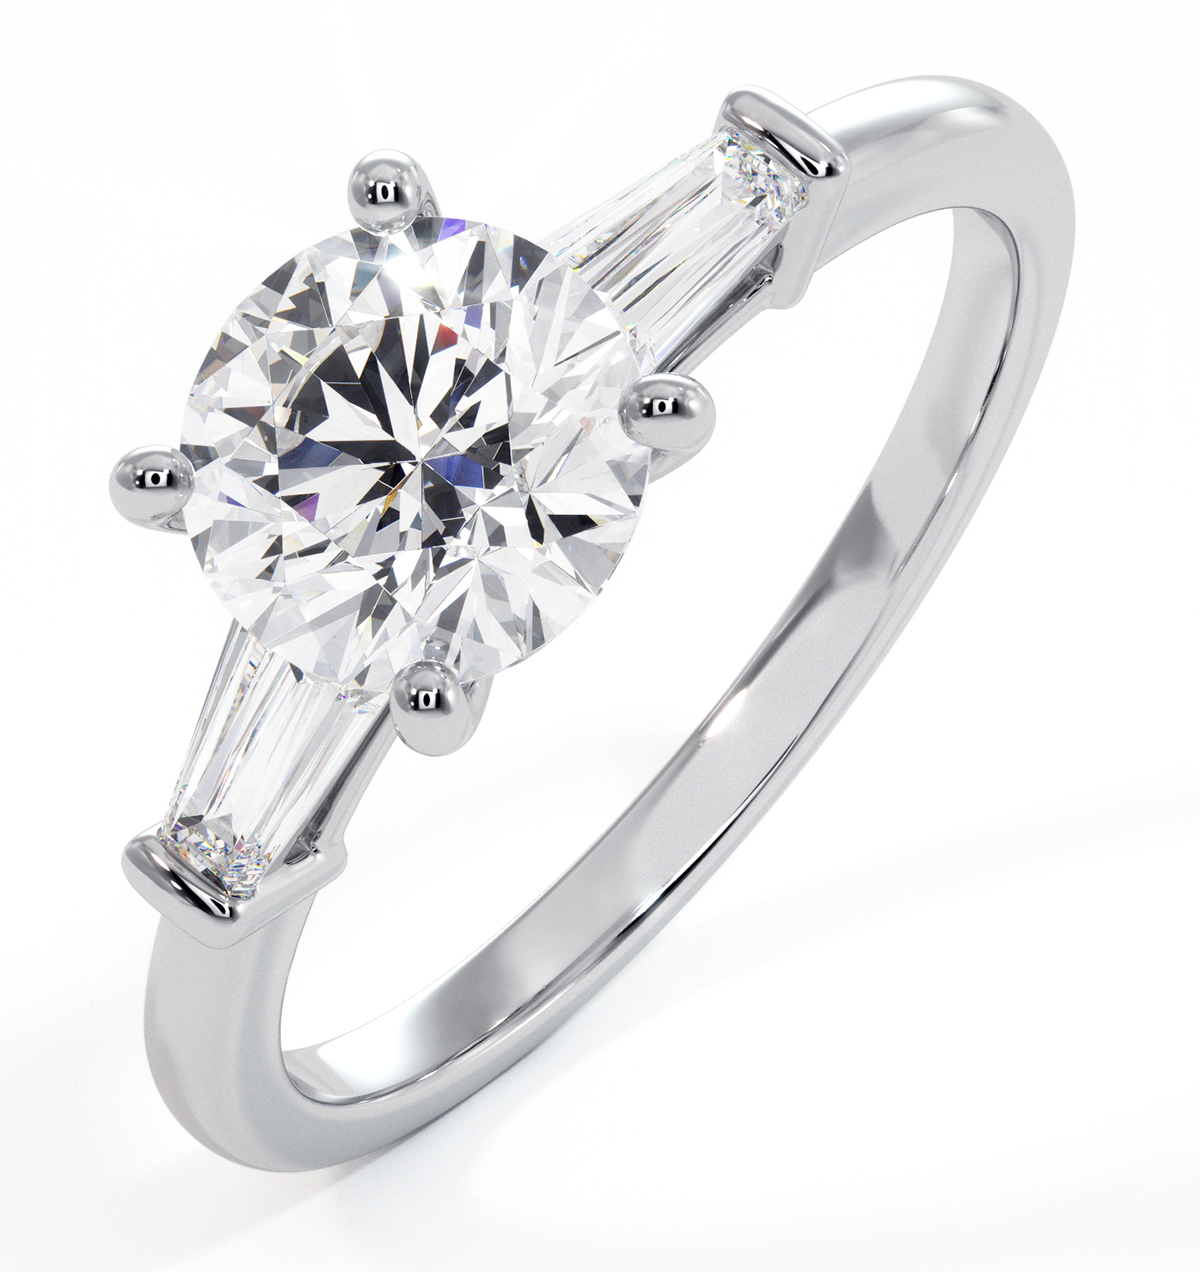 Isadora GIA Diamond Engagement Ring Platinum 1.25ct G/VS2 - image 1